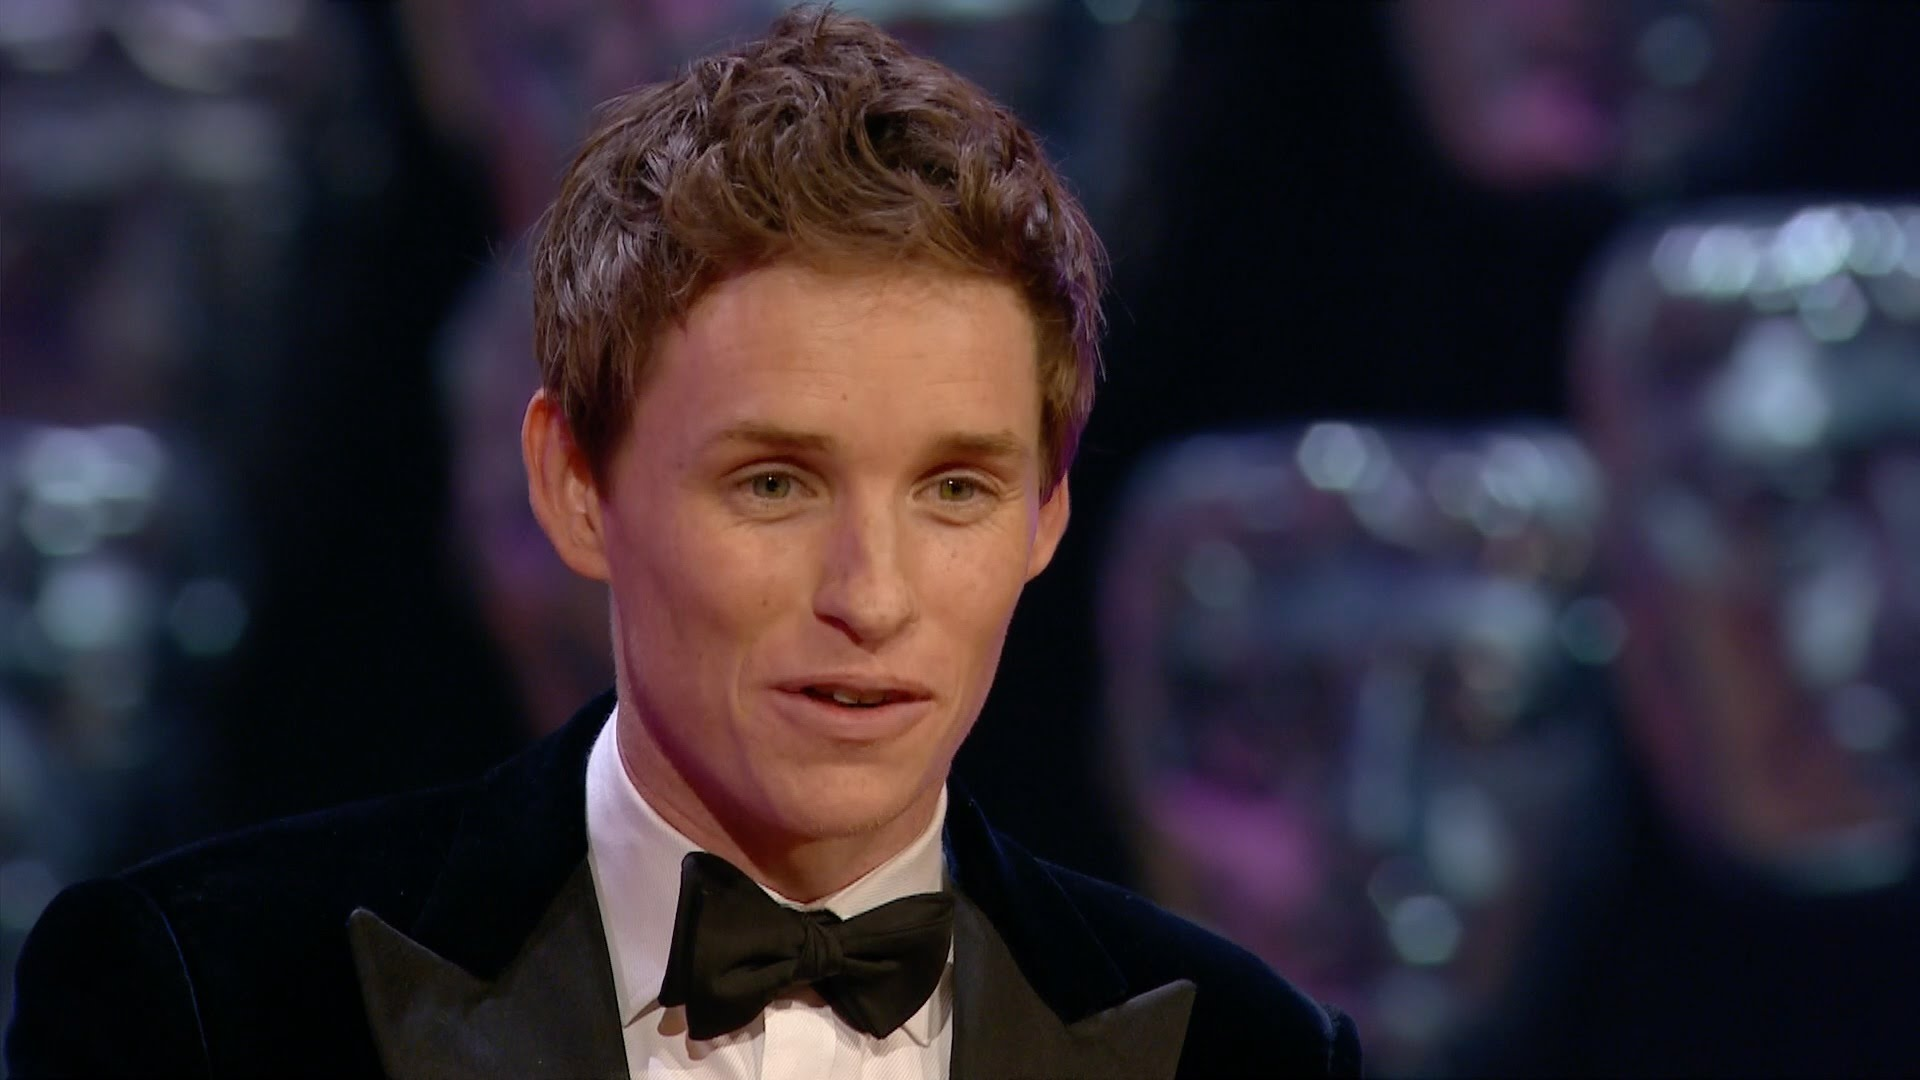 Eddie Redmayne Full hd wallpapers